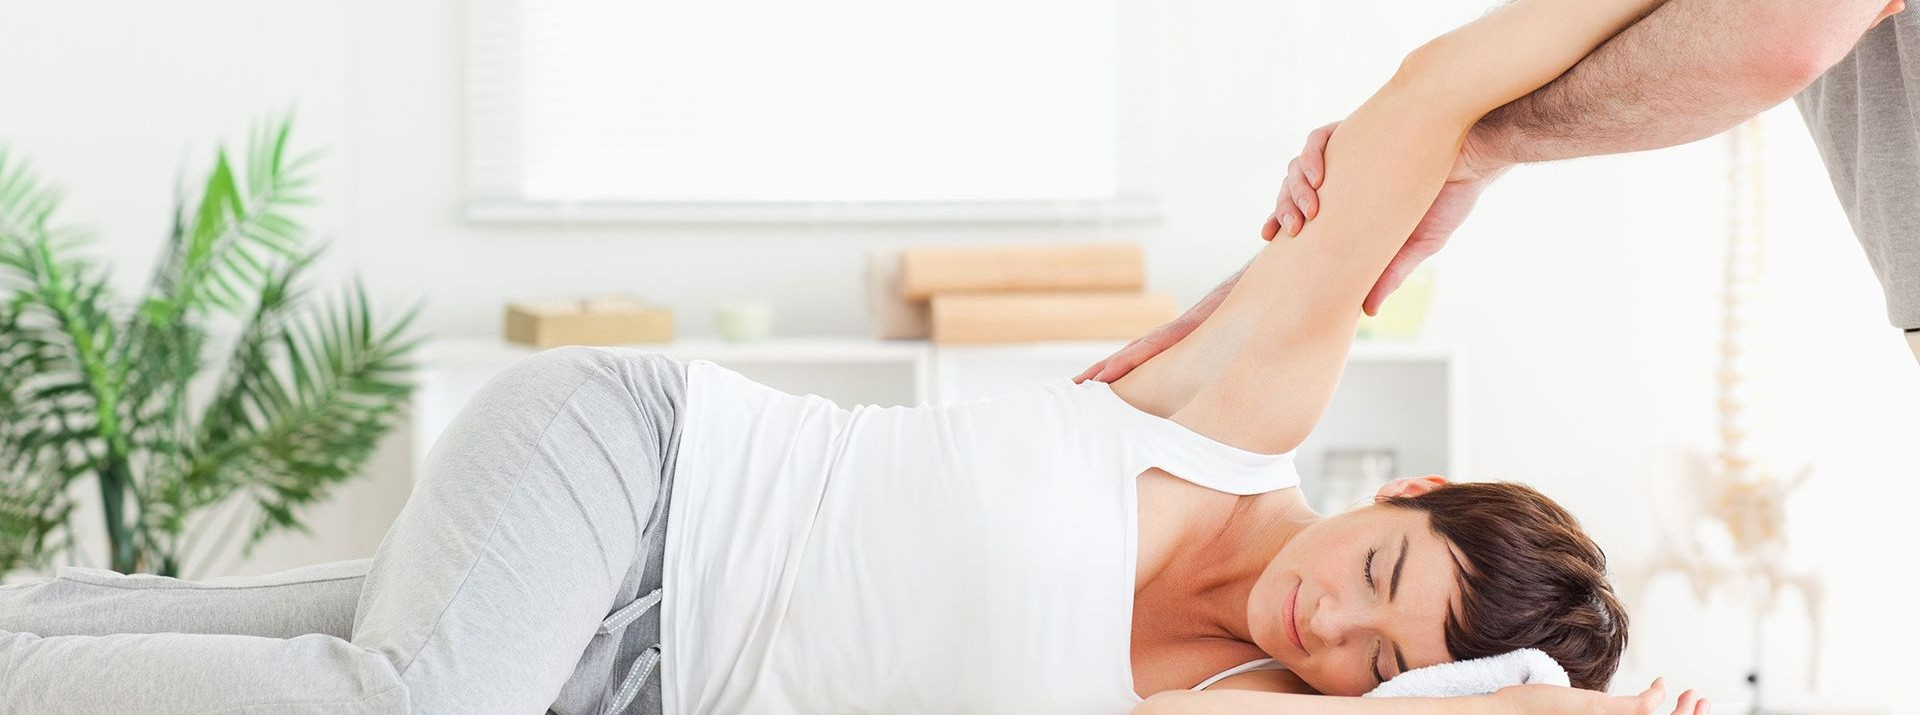 We are a unique Physiotherapy clinic